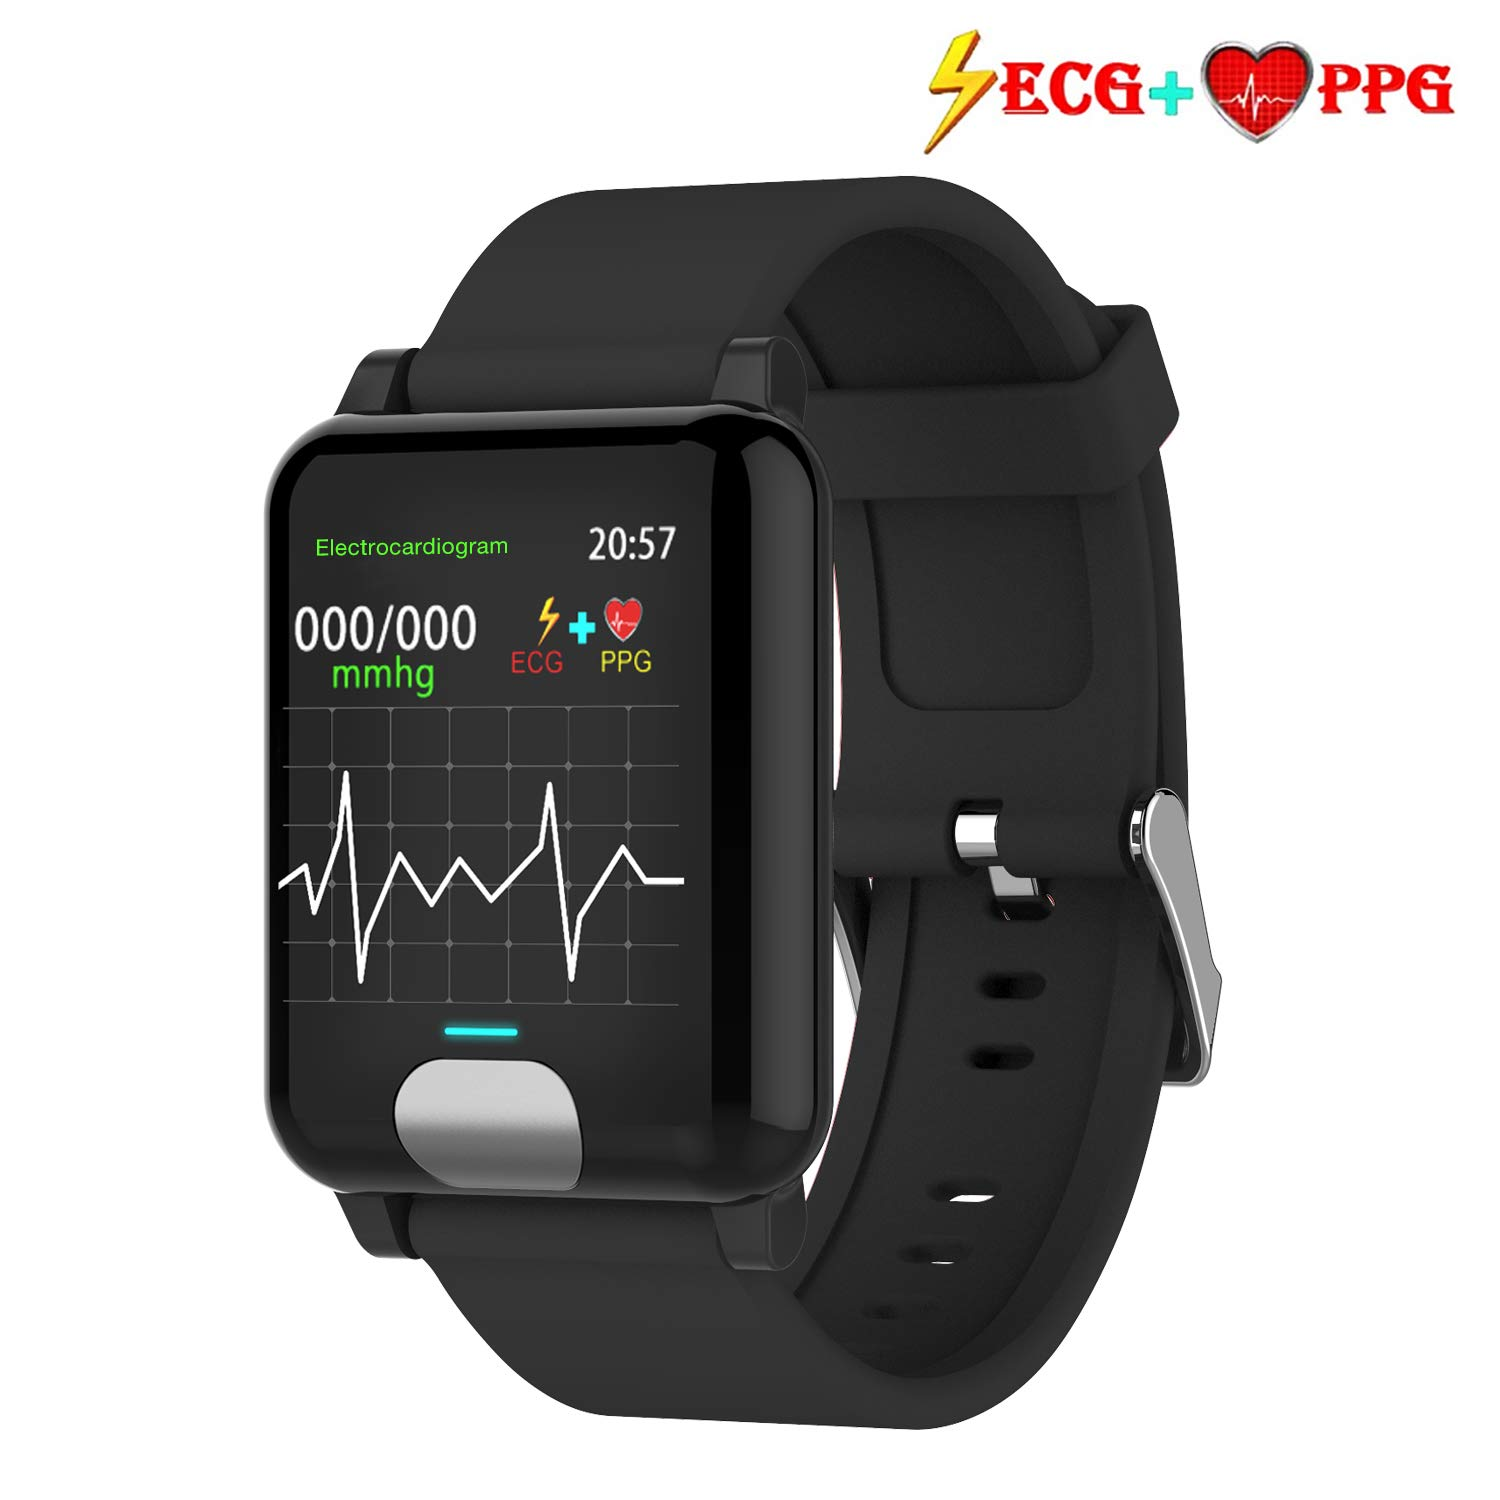 Fitness Tracker HR,ISWIM Color Screen ECG PPG Smart Watch,IP67 Waterproof, Activity Tracker with Heart Rate Blood Pressure Calories Pedometer Sleep Monitor Call/SMS Remind for Smartphones Gift (Black)